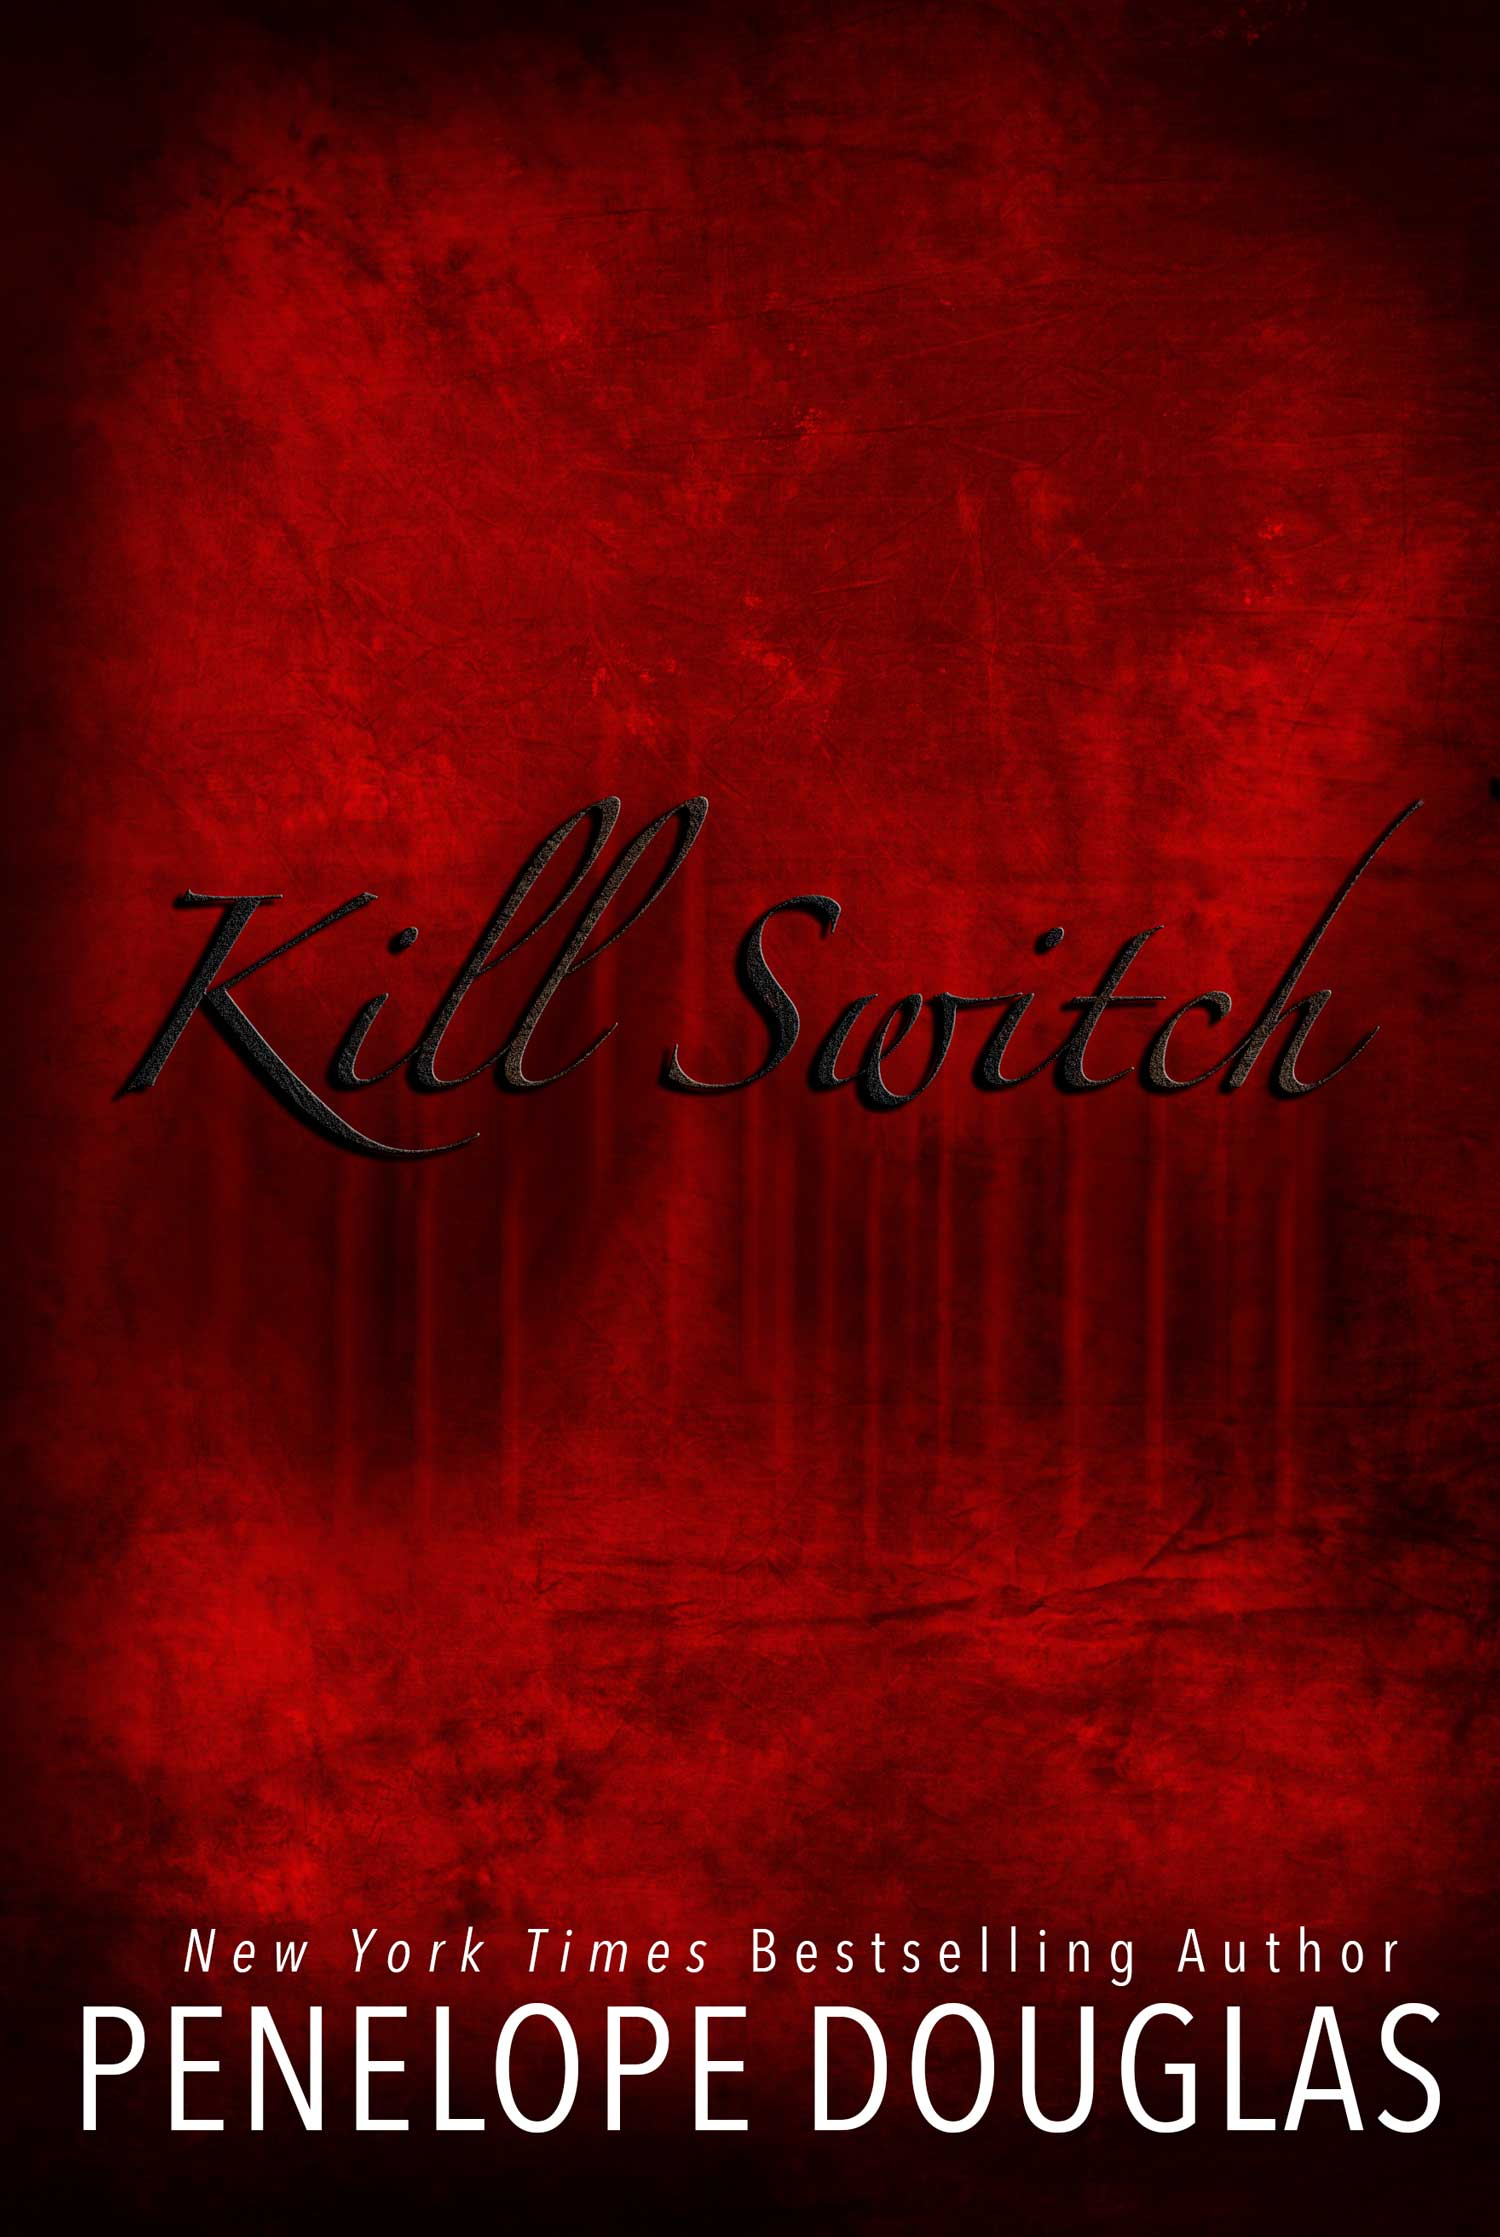 Cover Reveal * Kill Switch (Devil's Night book 3) by Penelope Douglas * Coming February 11, 2019 * Giveaway